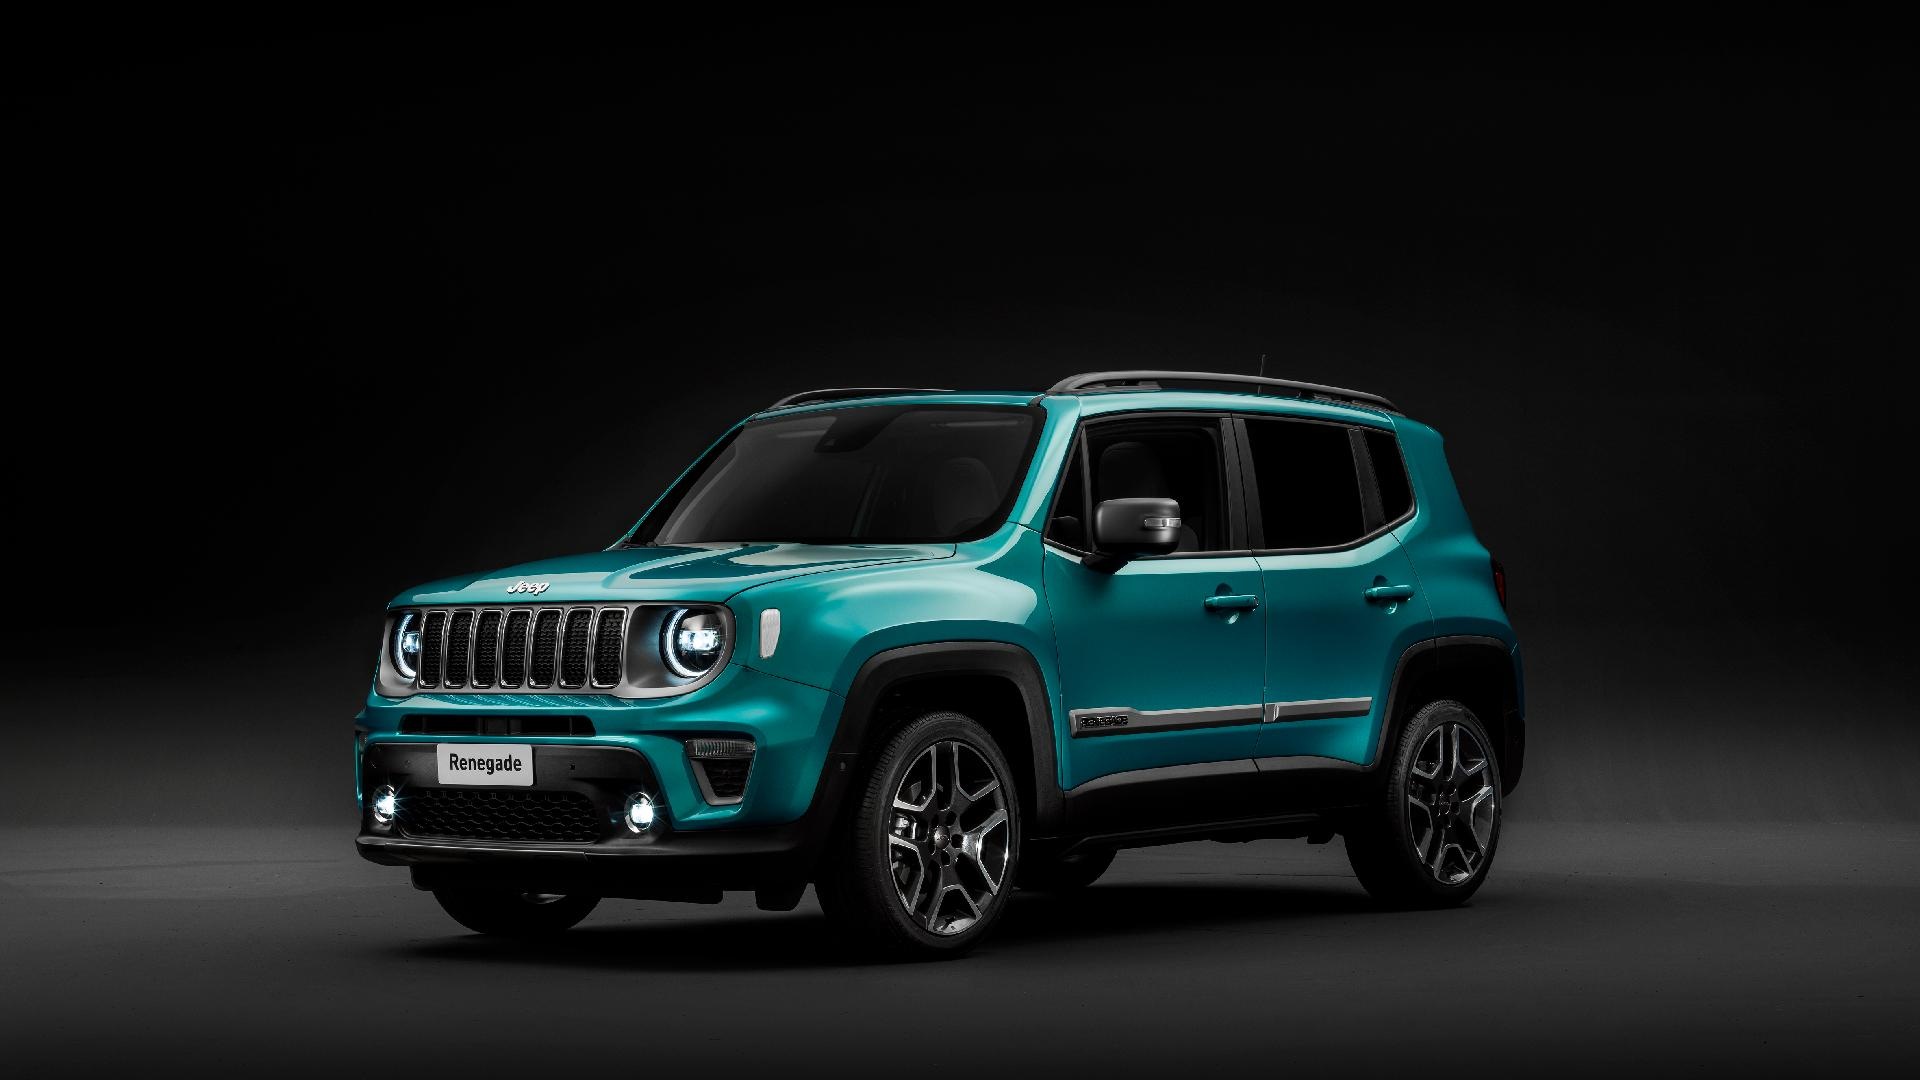 JEEP Renegade 1.0 GSE T3 Turbo Sport FWD S&S